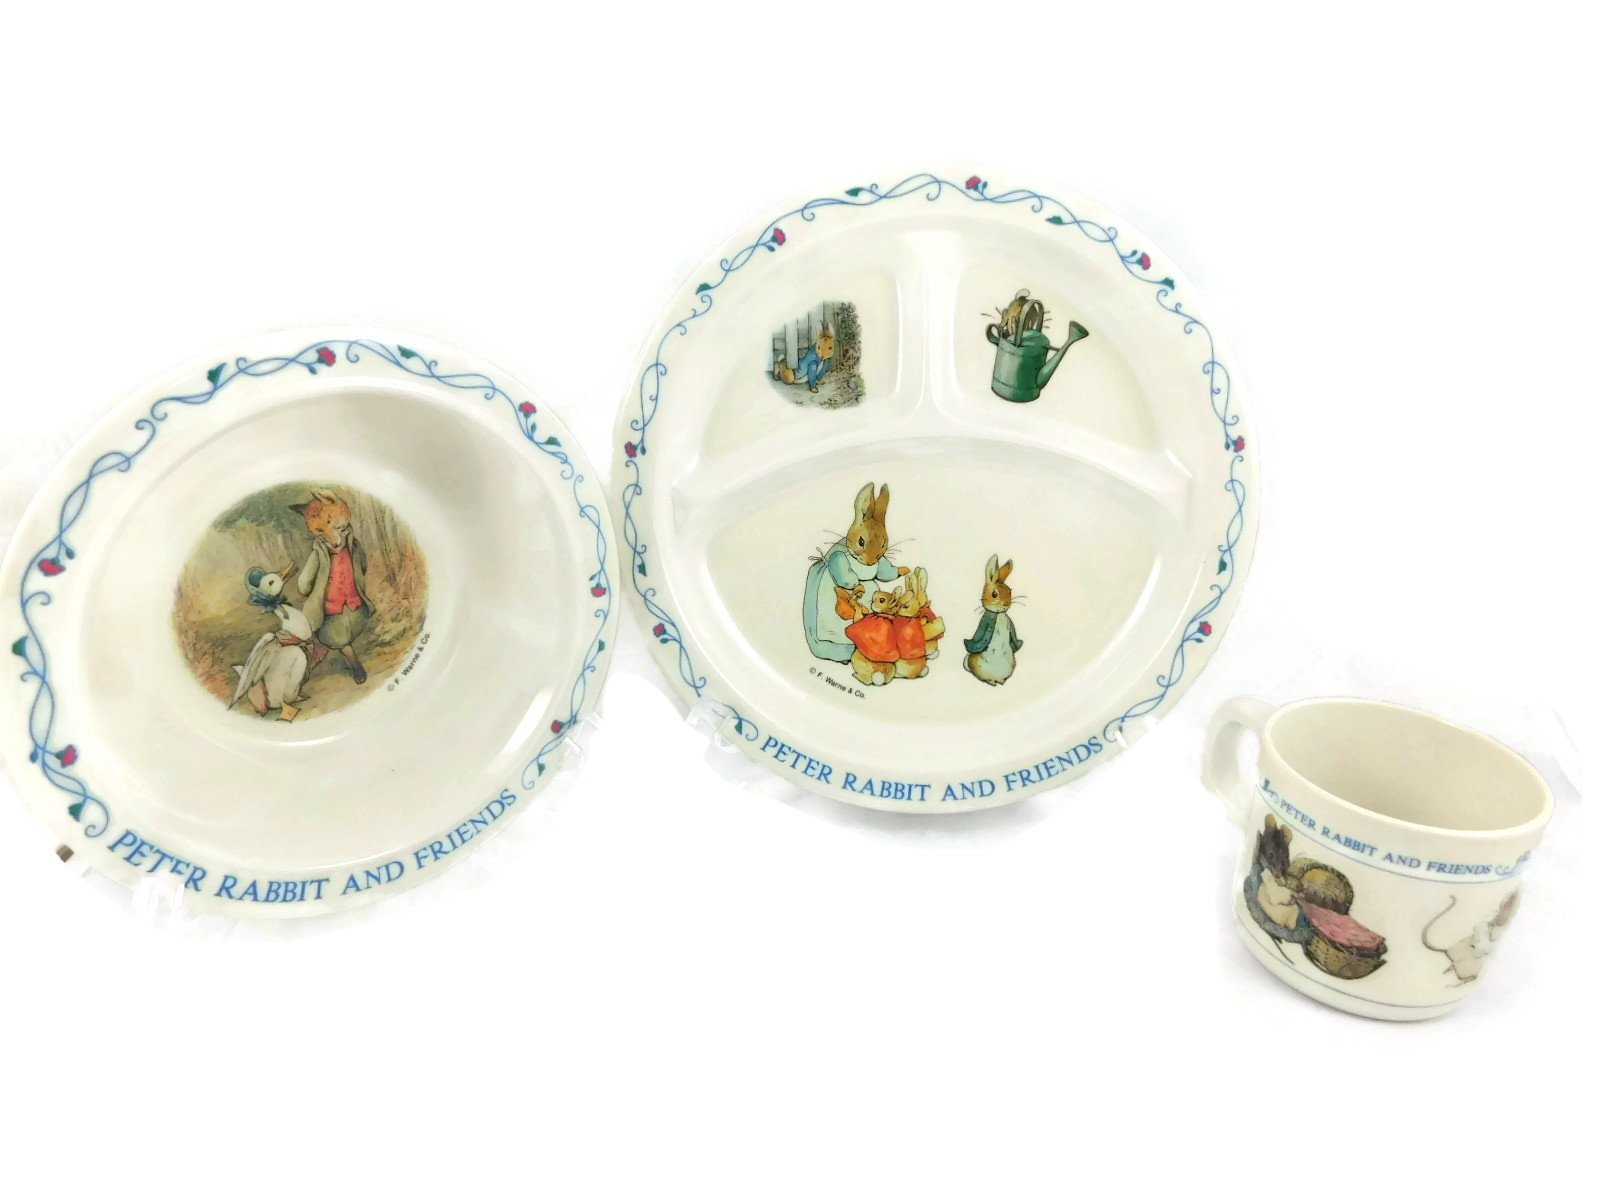 Beatrix Potter Peter Rabbit and Friends 3 Piece Set